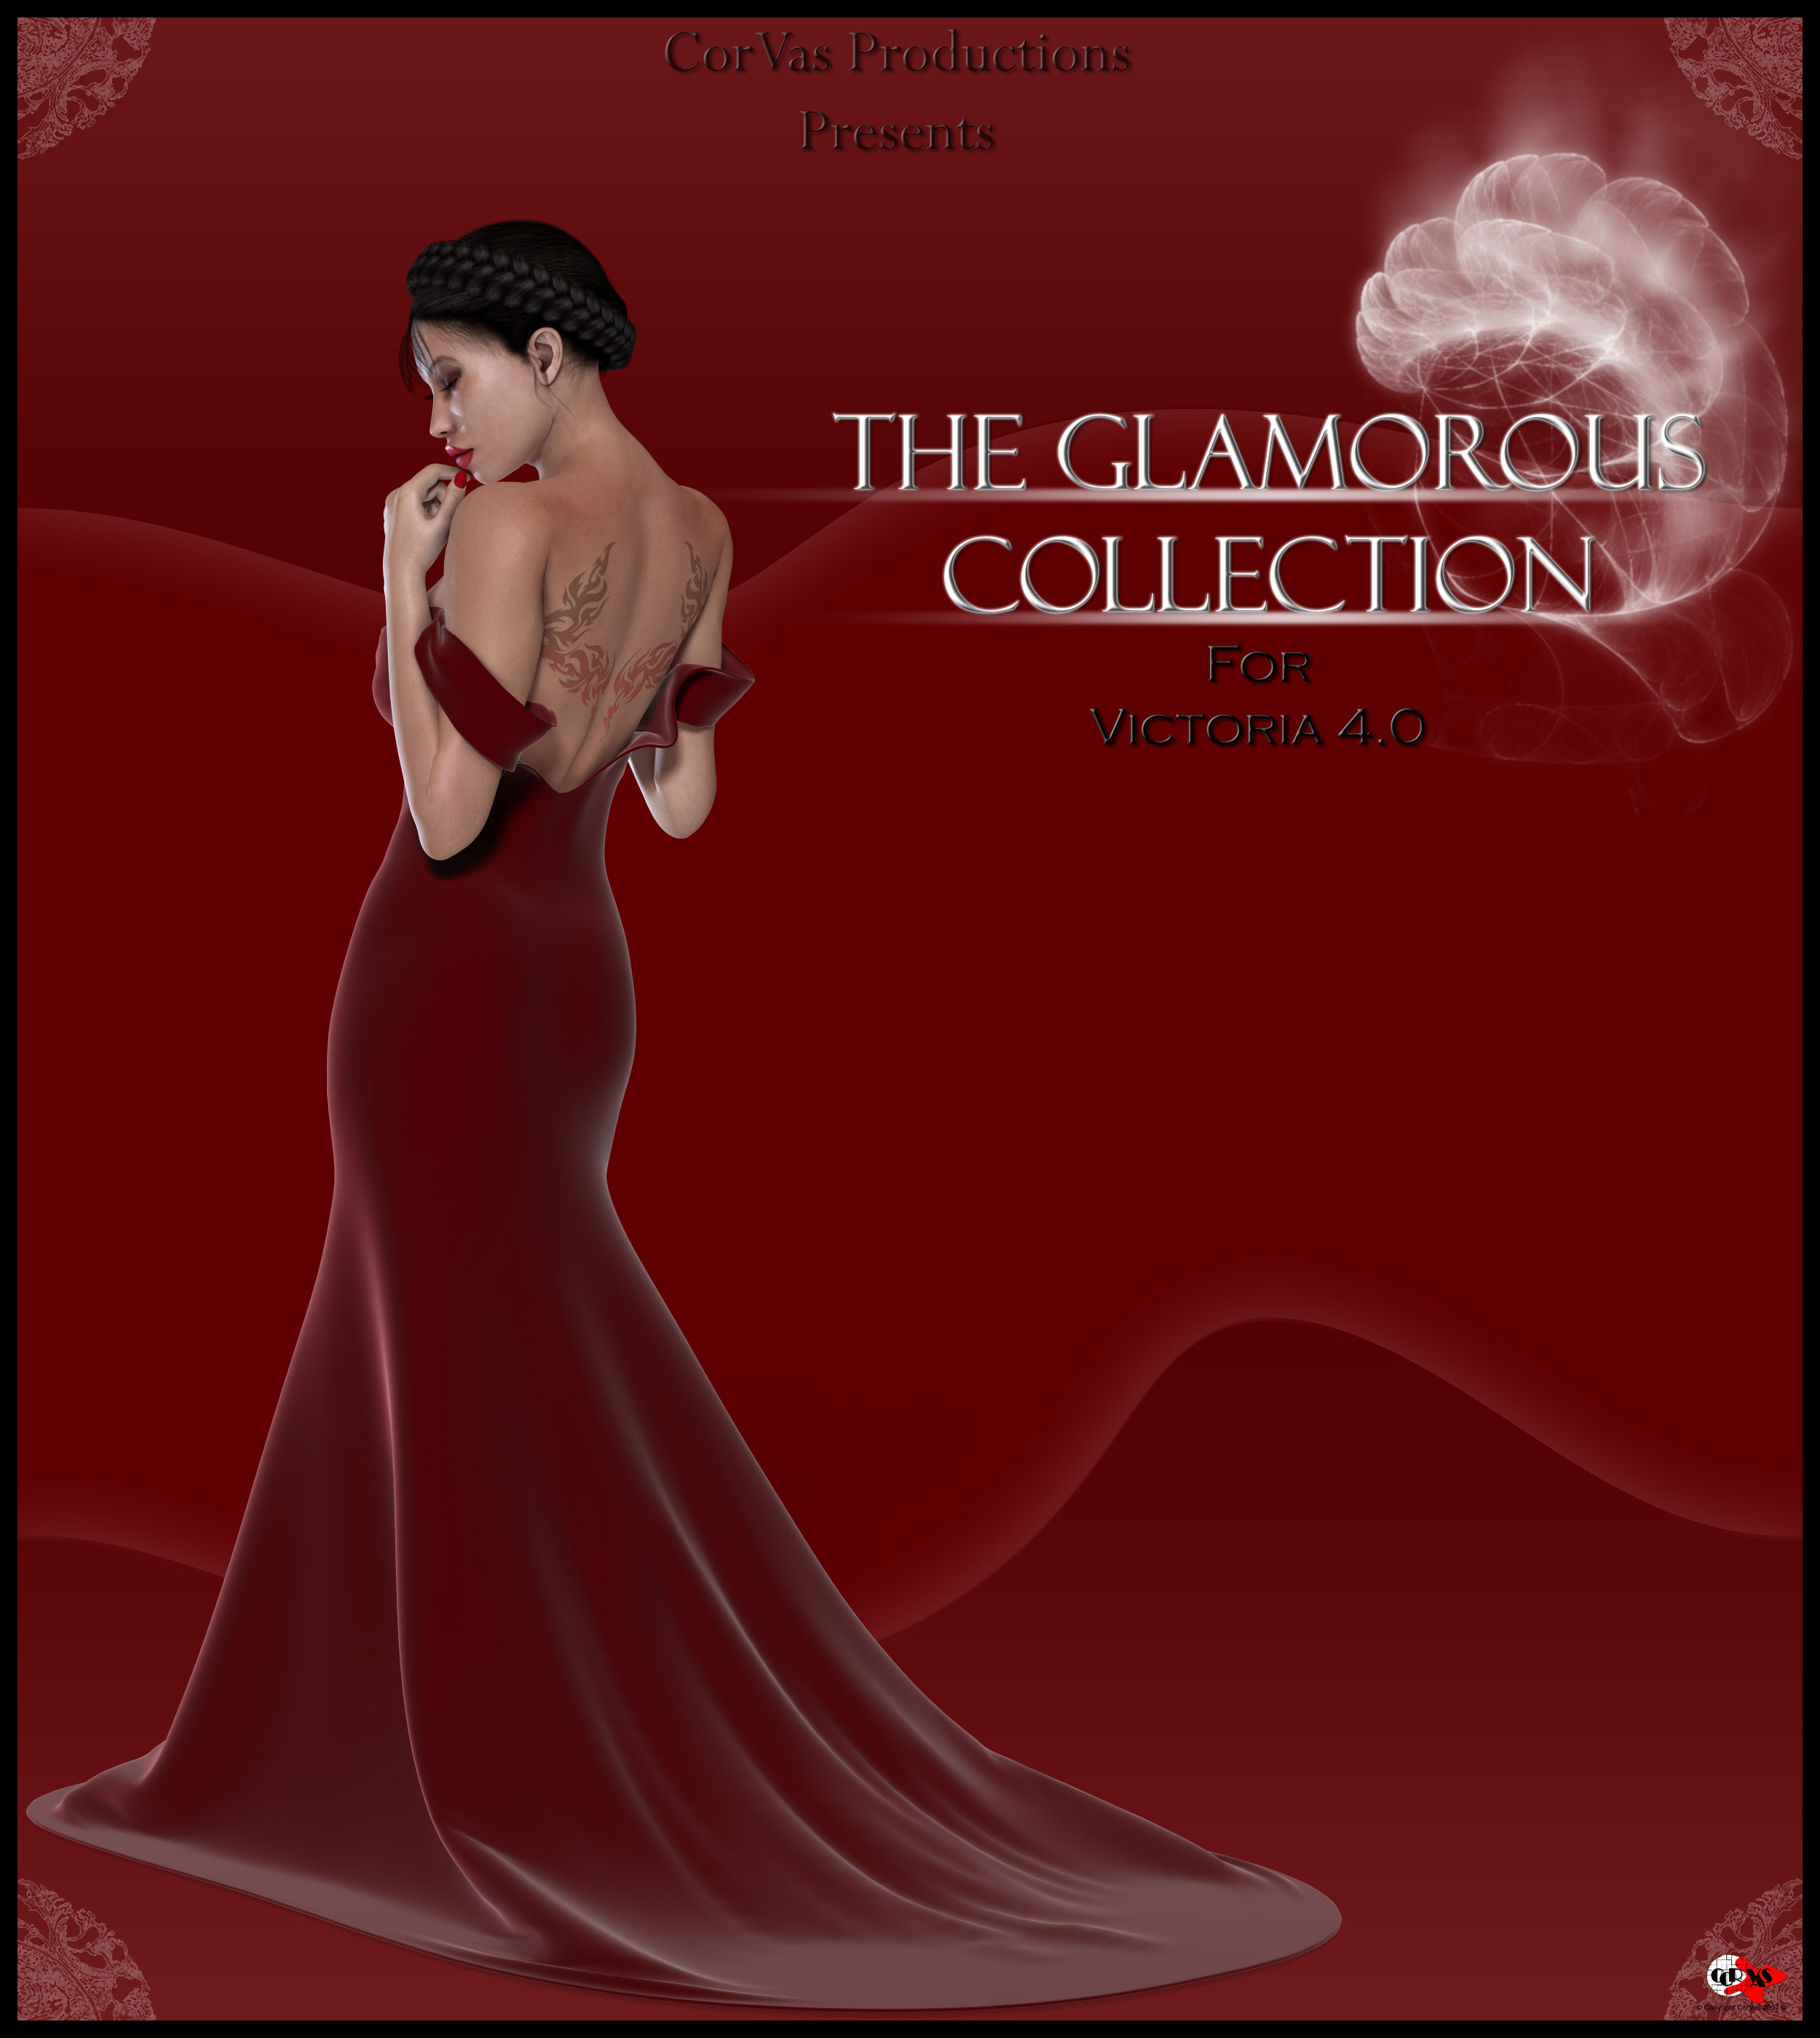 The Glamorous Collection